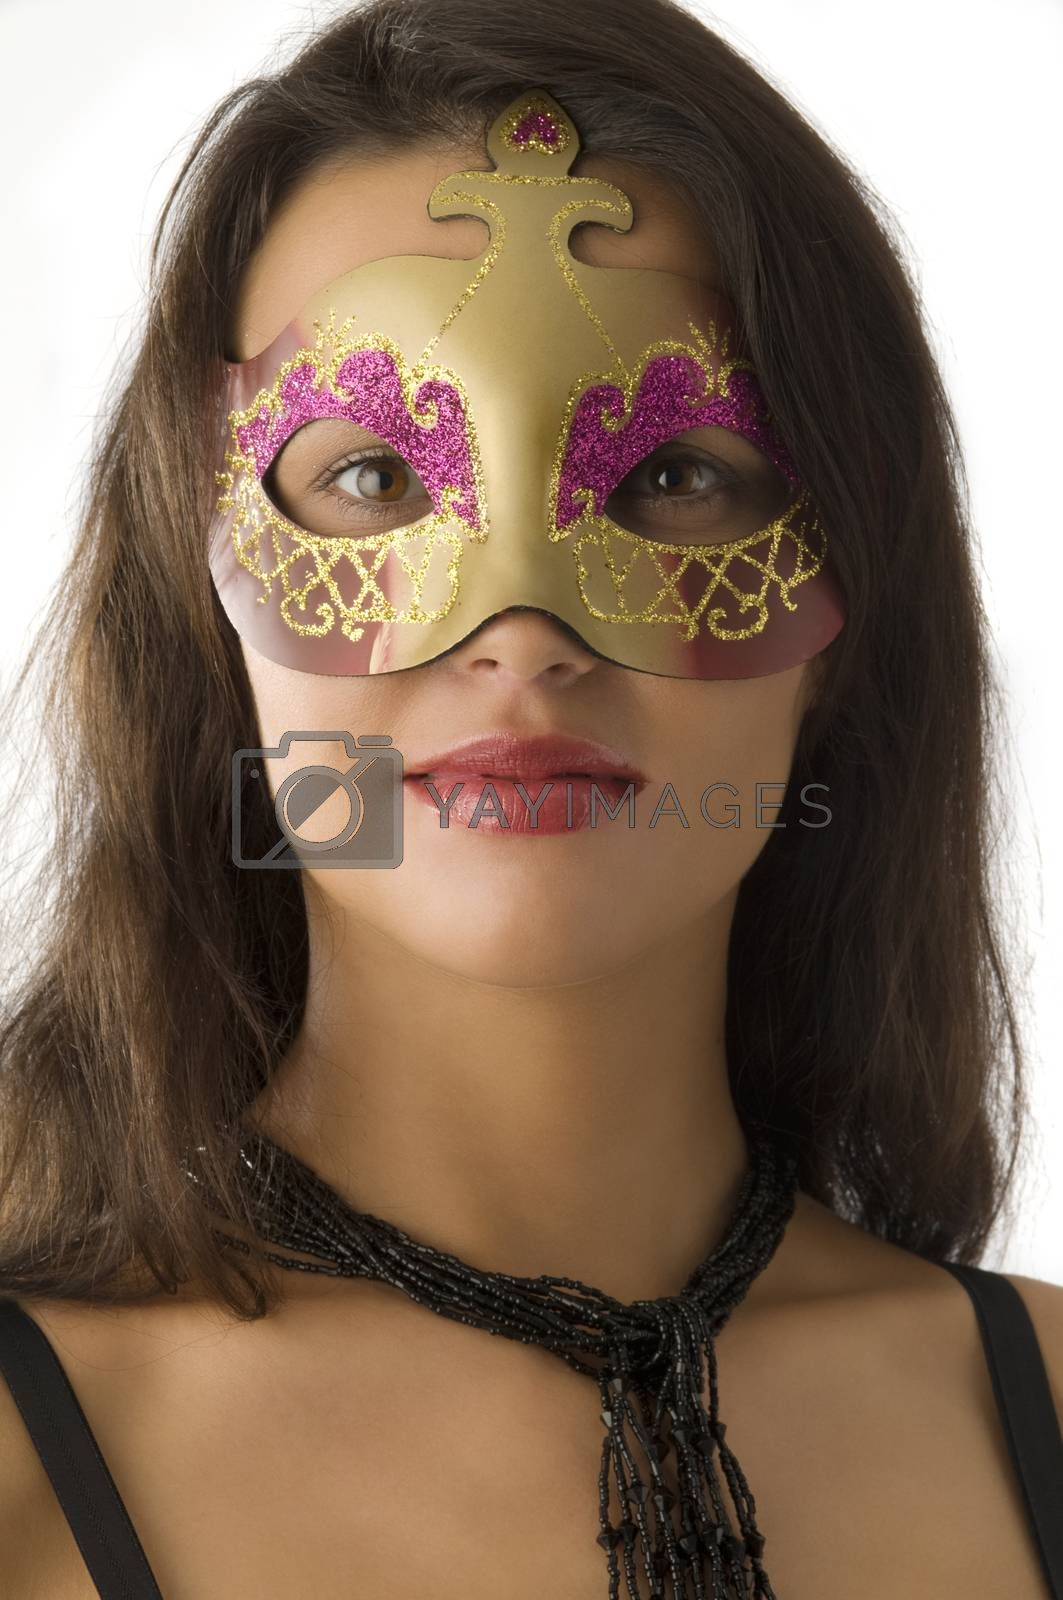 Royalty free image of portrait with mask by fotoCD